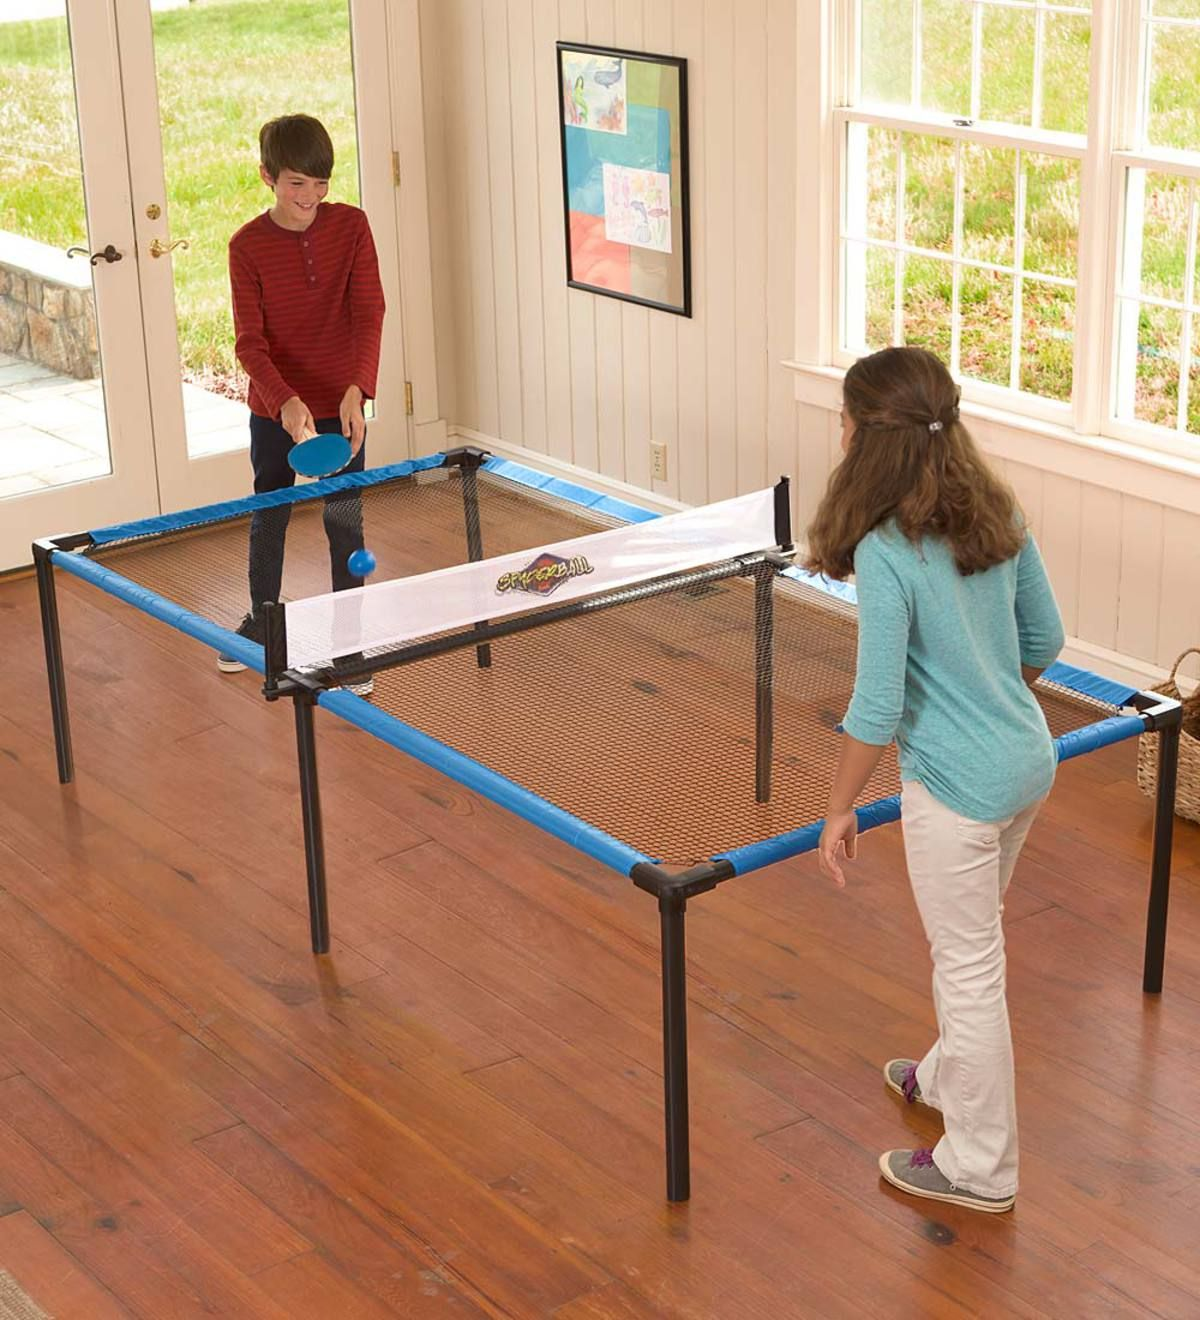 The Net Effect Of This Revolutionary New Development In Tabletop Ball Games Is Twice The Bounce Three Times T Indoor Games For Kids Games For Kids Indoor Play